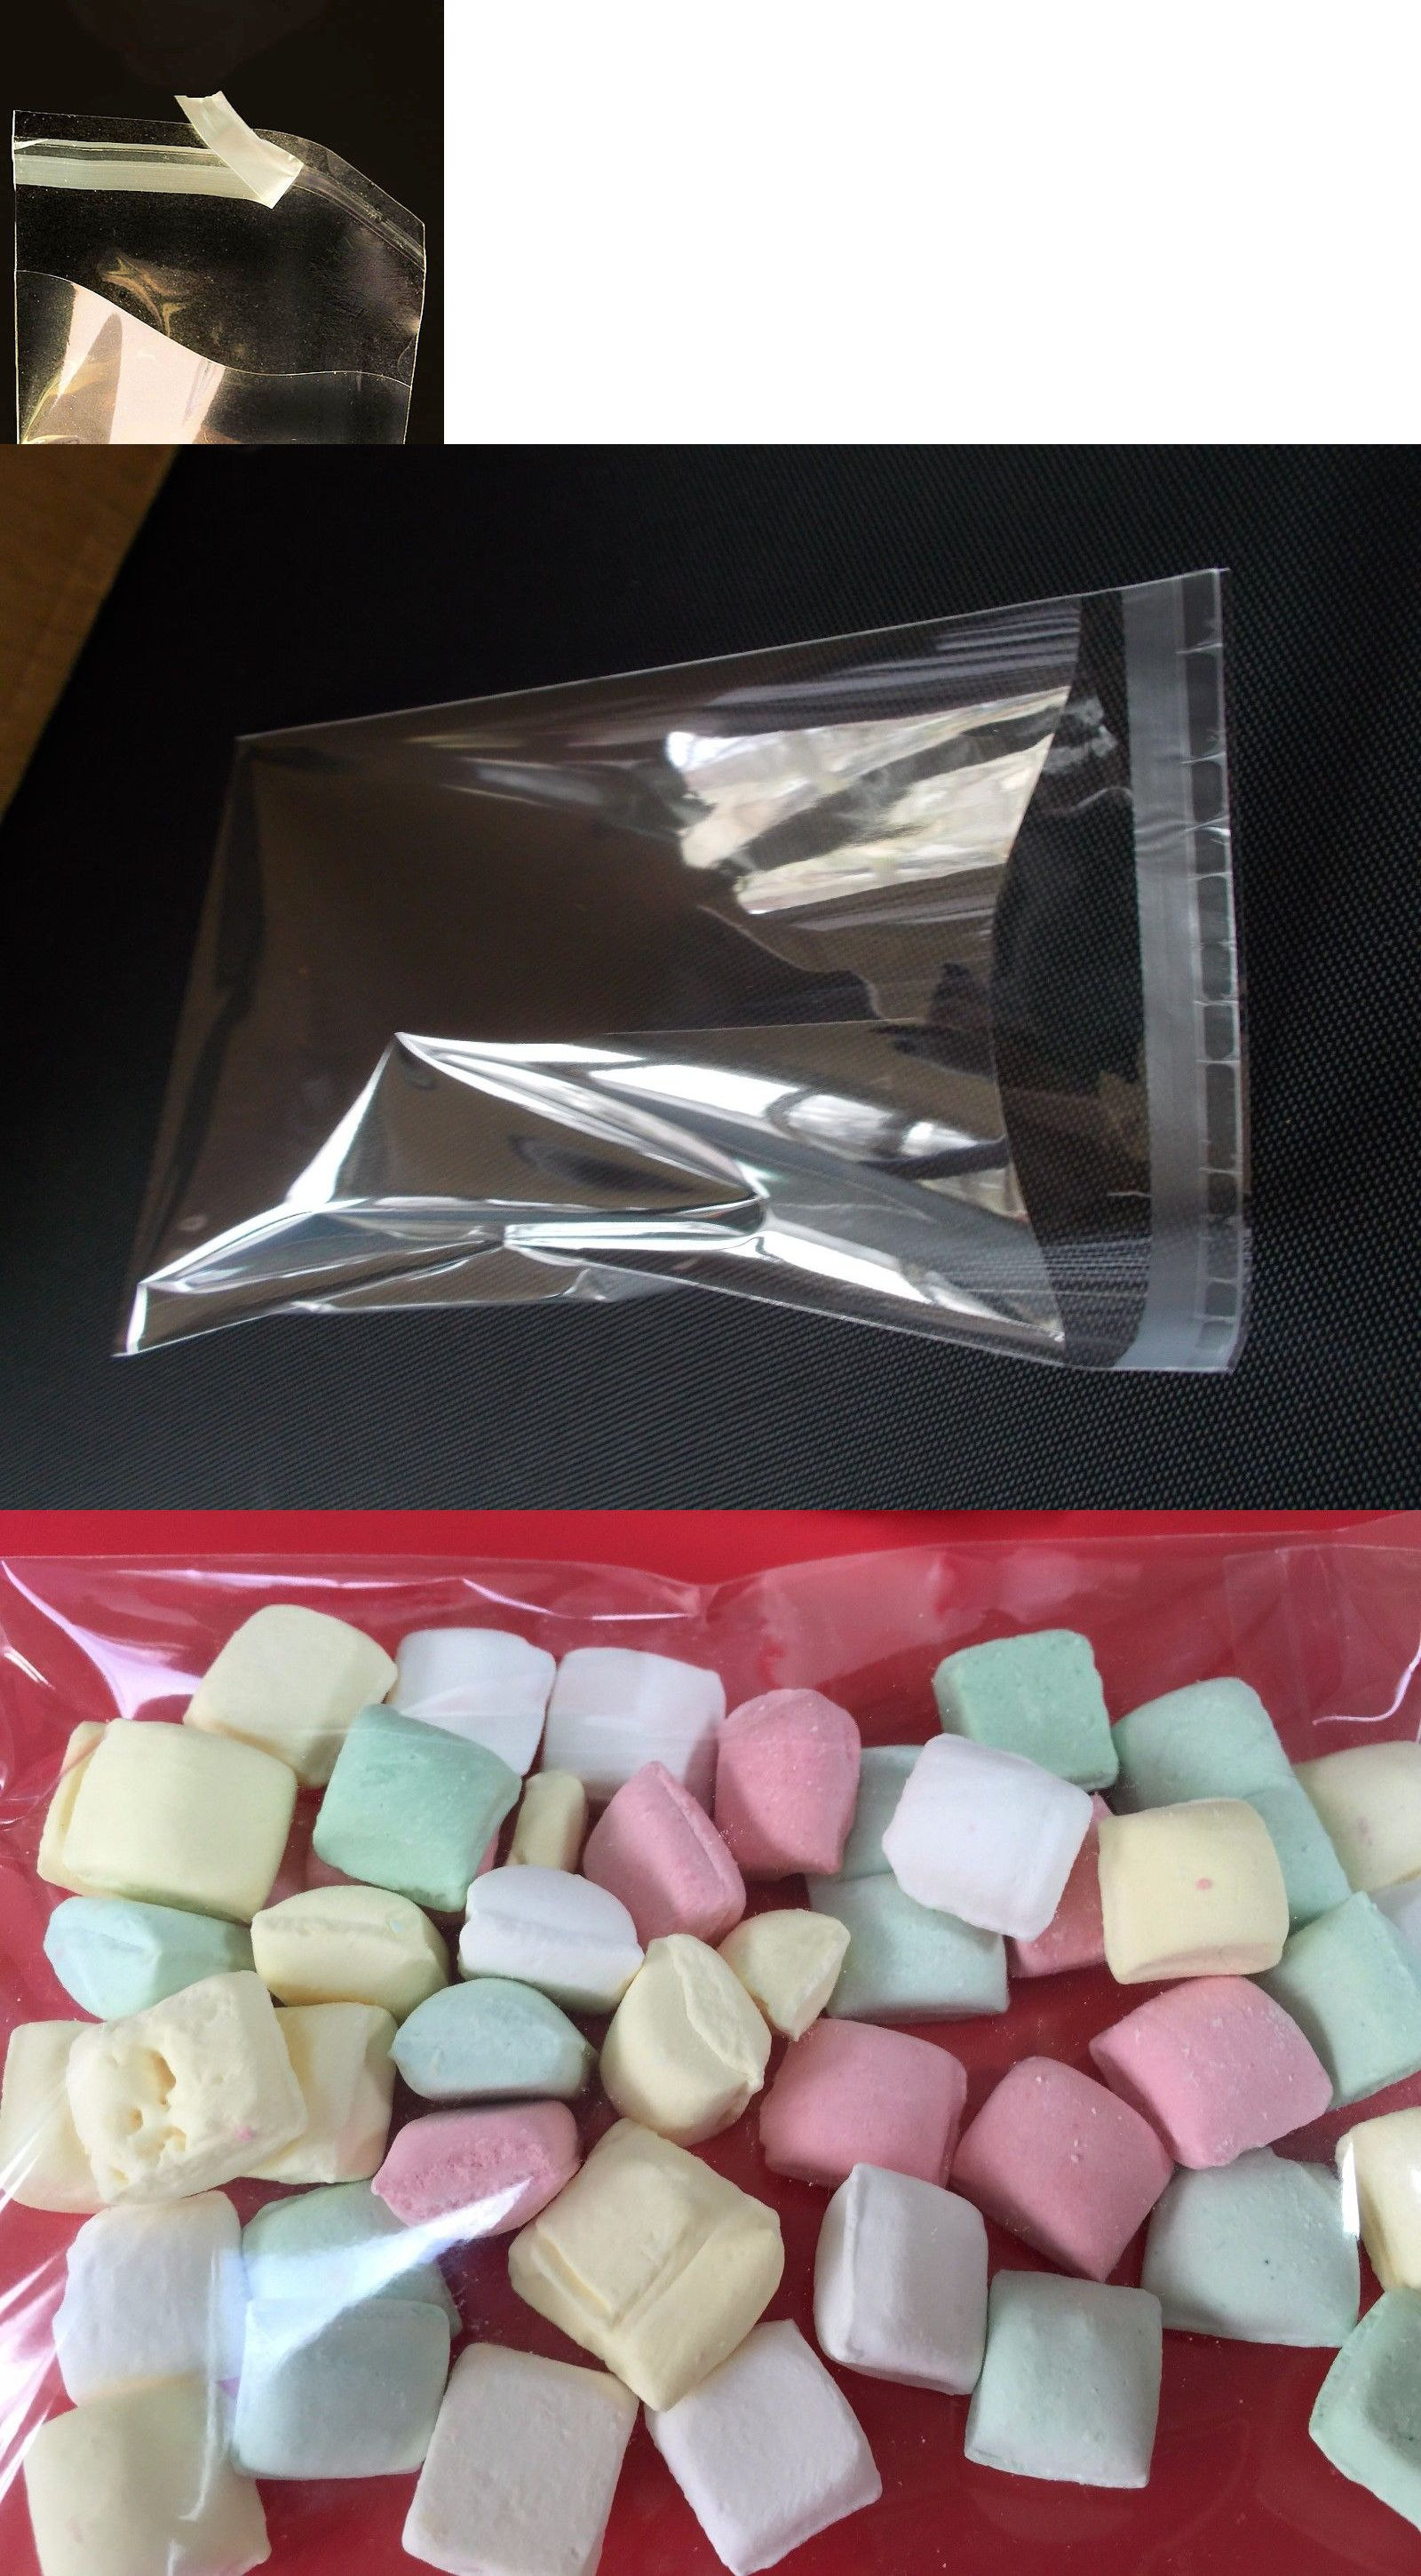 100 SUPER CLEAR POLY BAKERY CELLO CANDY BAG COOKIE FLAT POLYPROPYLENE BAGS